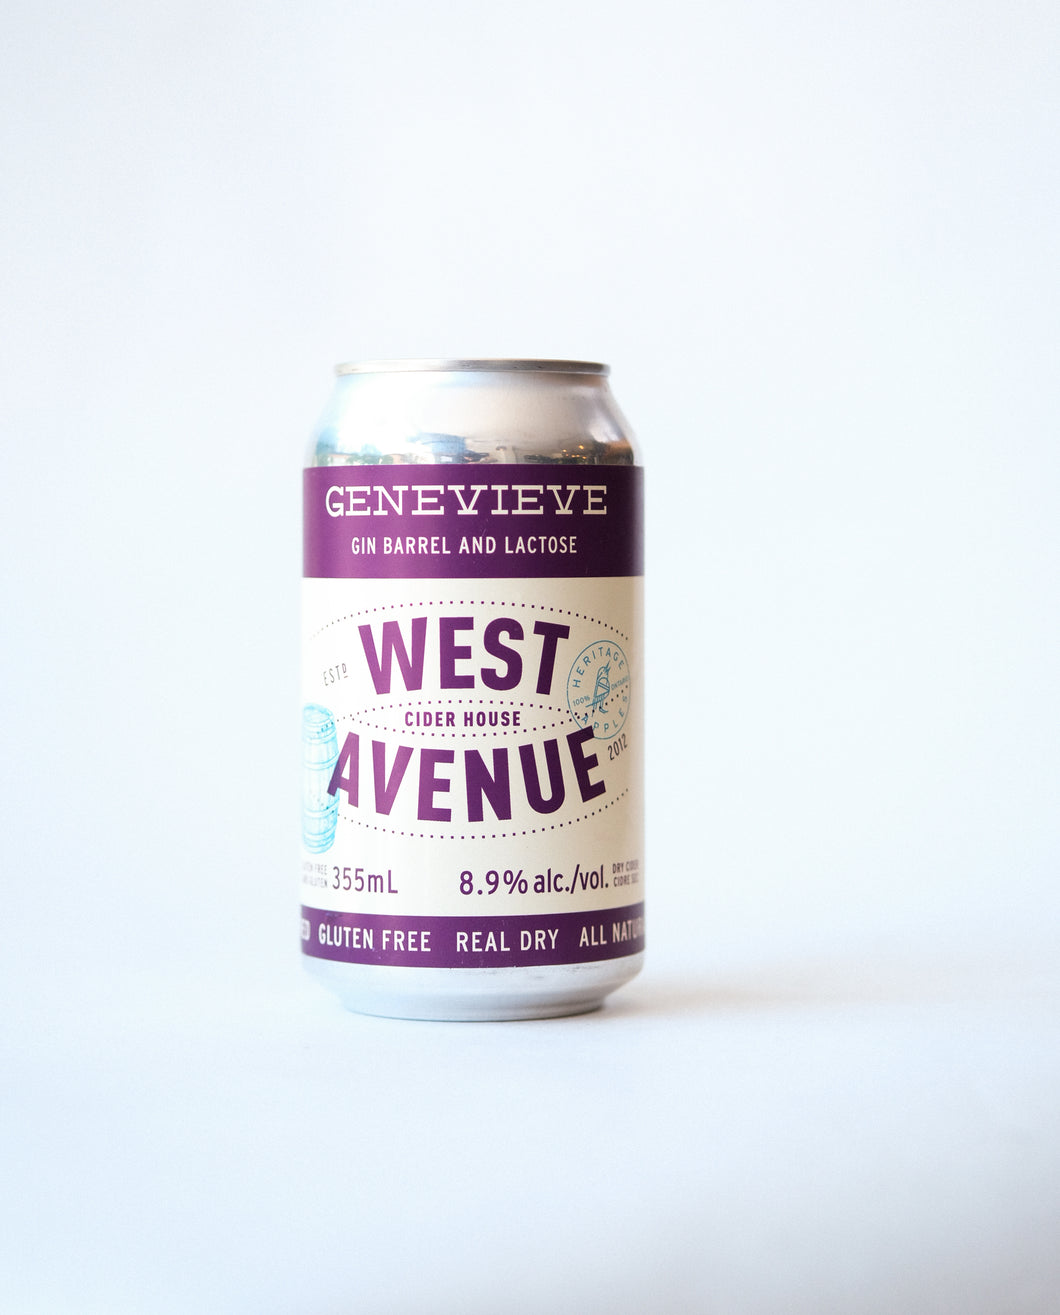 West Ave, Genevieve